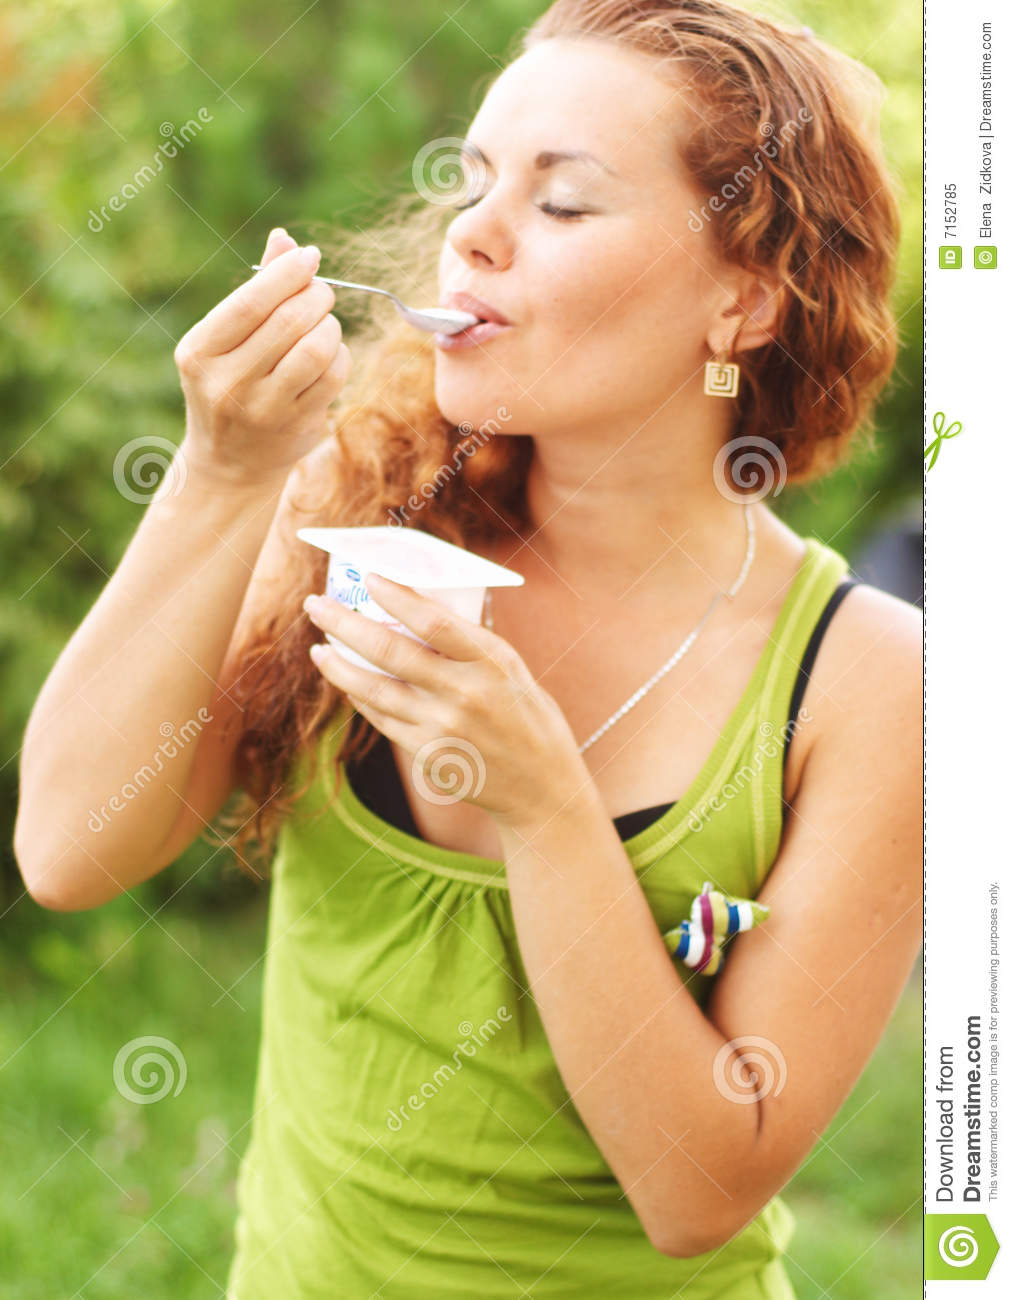 Girl eats yogurt and has closed eye from pleasure